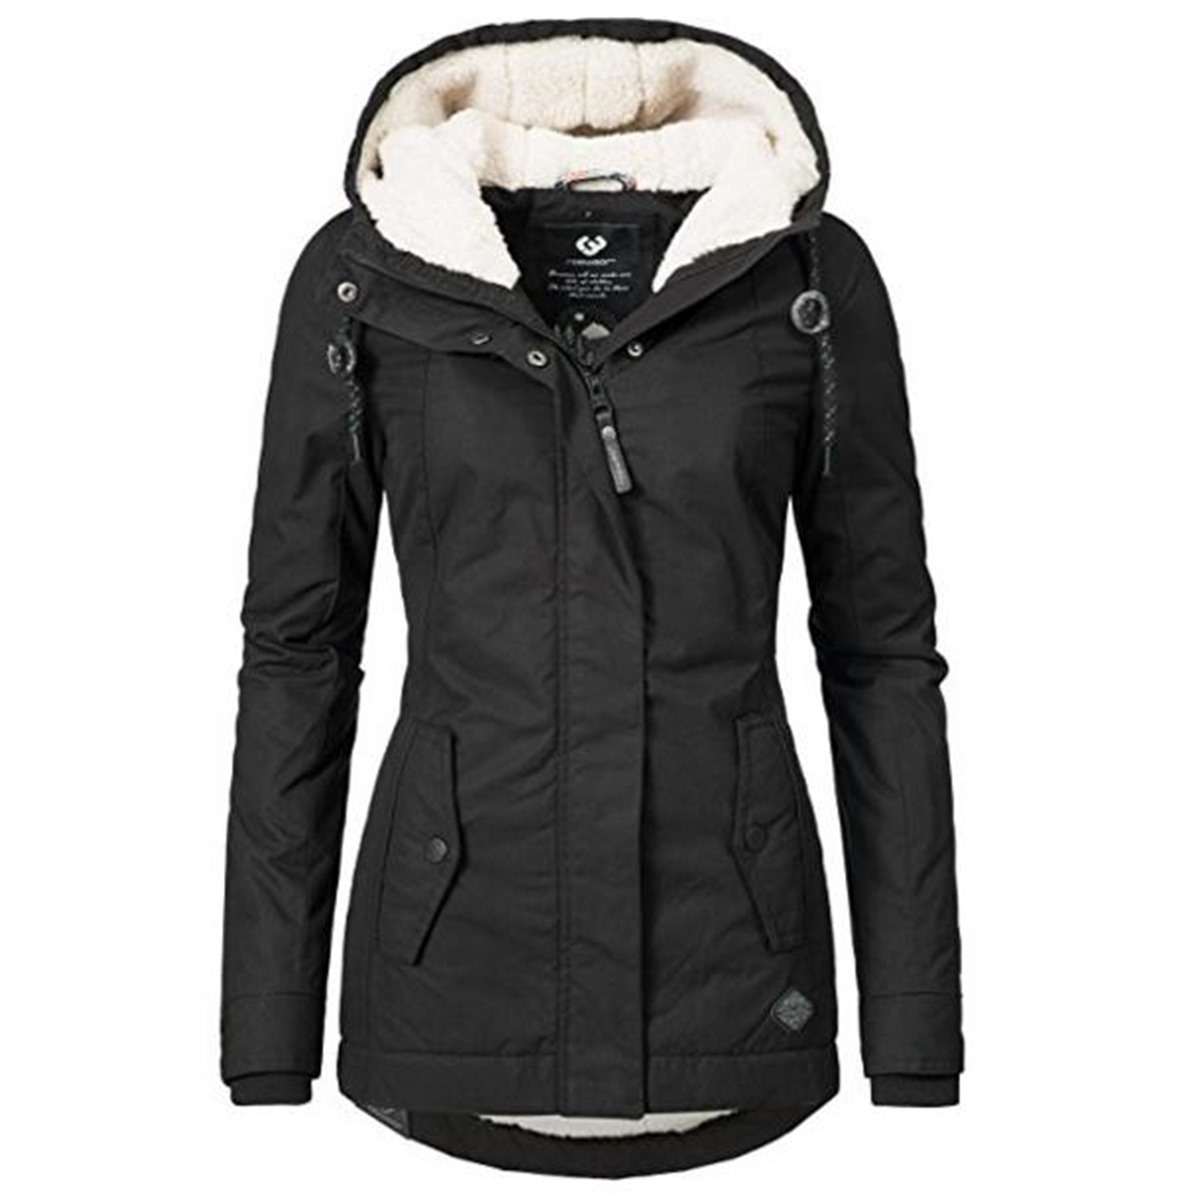 23026a43b3 Women Winter Jacket Coat Cotton Windproof Slim Outerwear Fashion Elastic  Waist Zipper Pocket Hooded Drawstring Overcoats Autumn